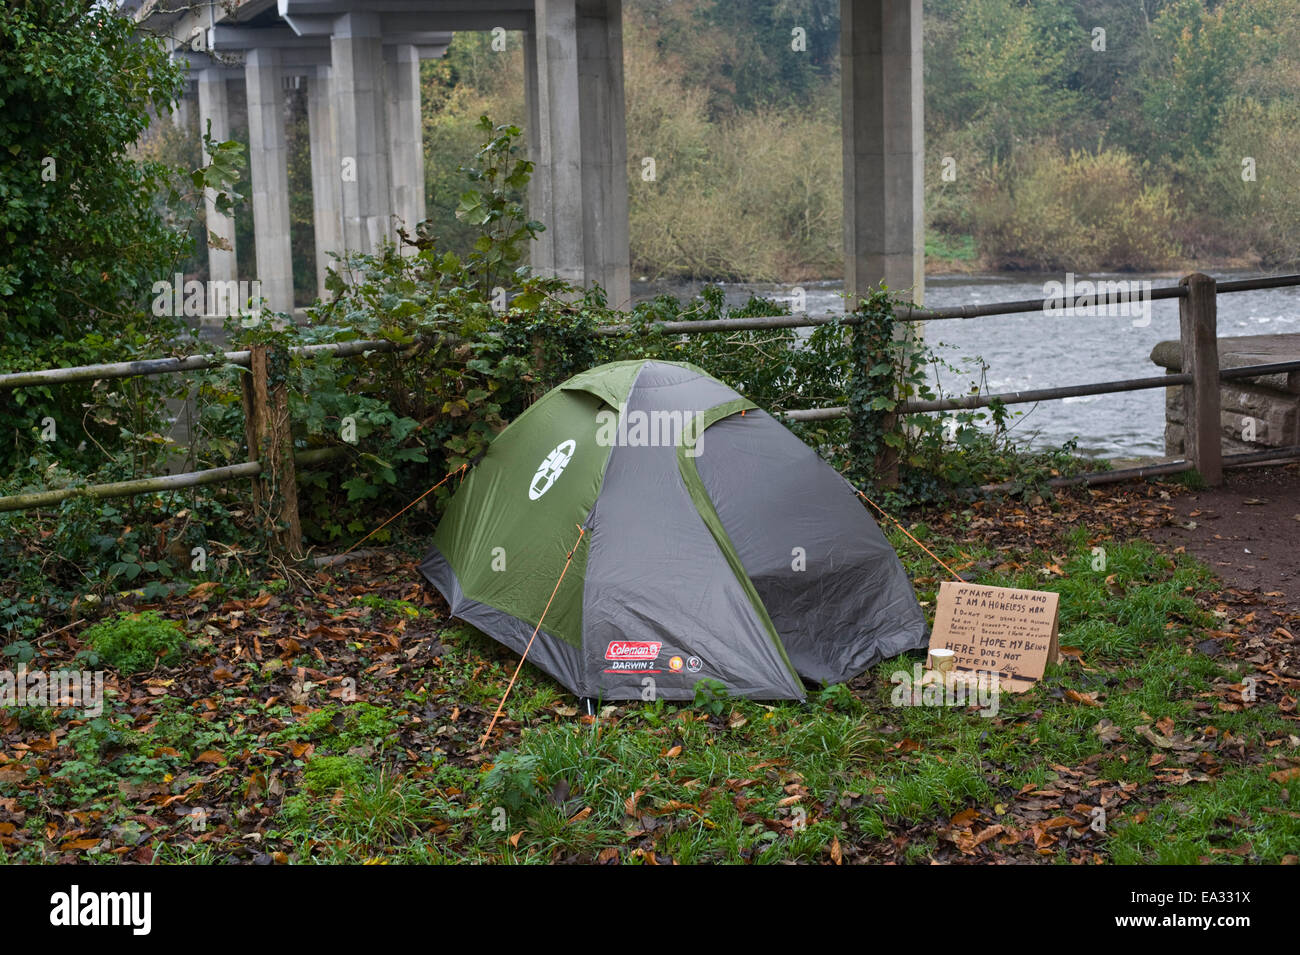 Hay-on-Wye, Powys, Wales, UK 6th Nov 2014. Tent of homeless man called 'Alan' living under the road bridge - Stock Image